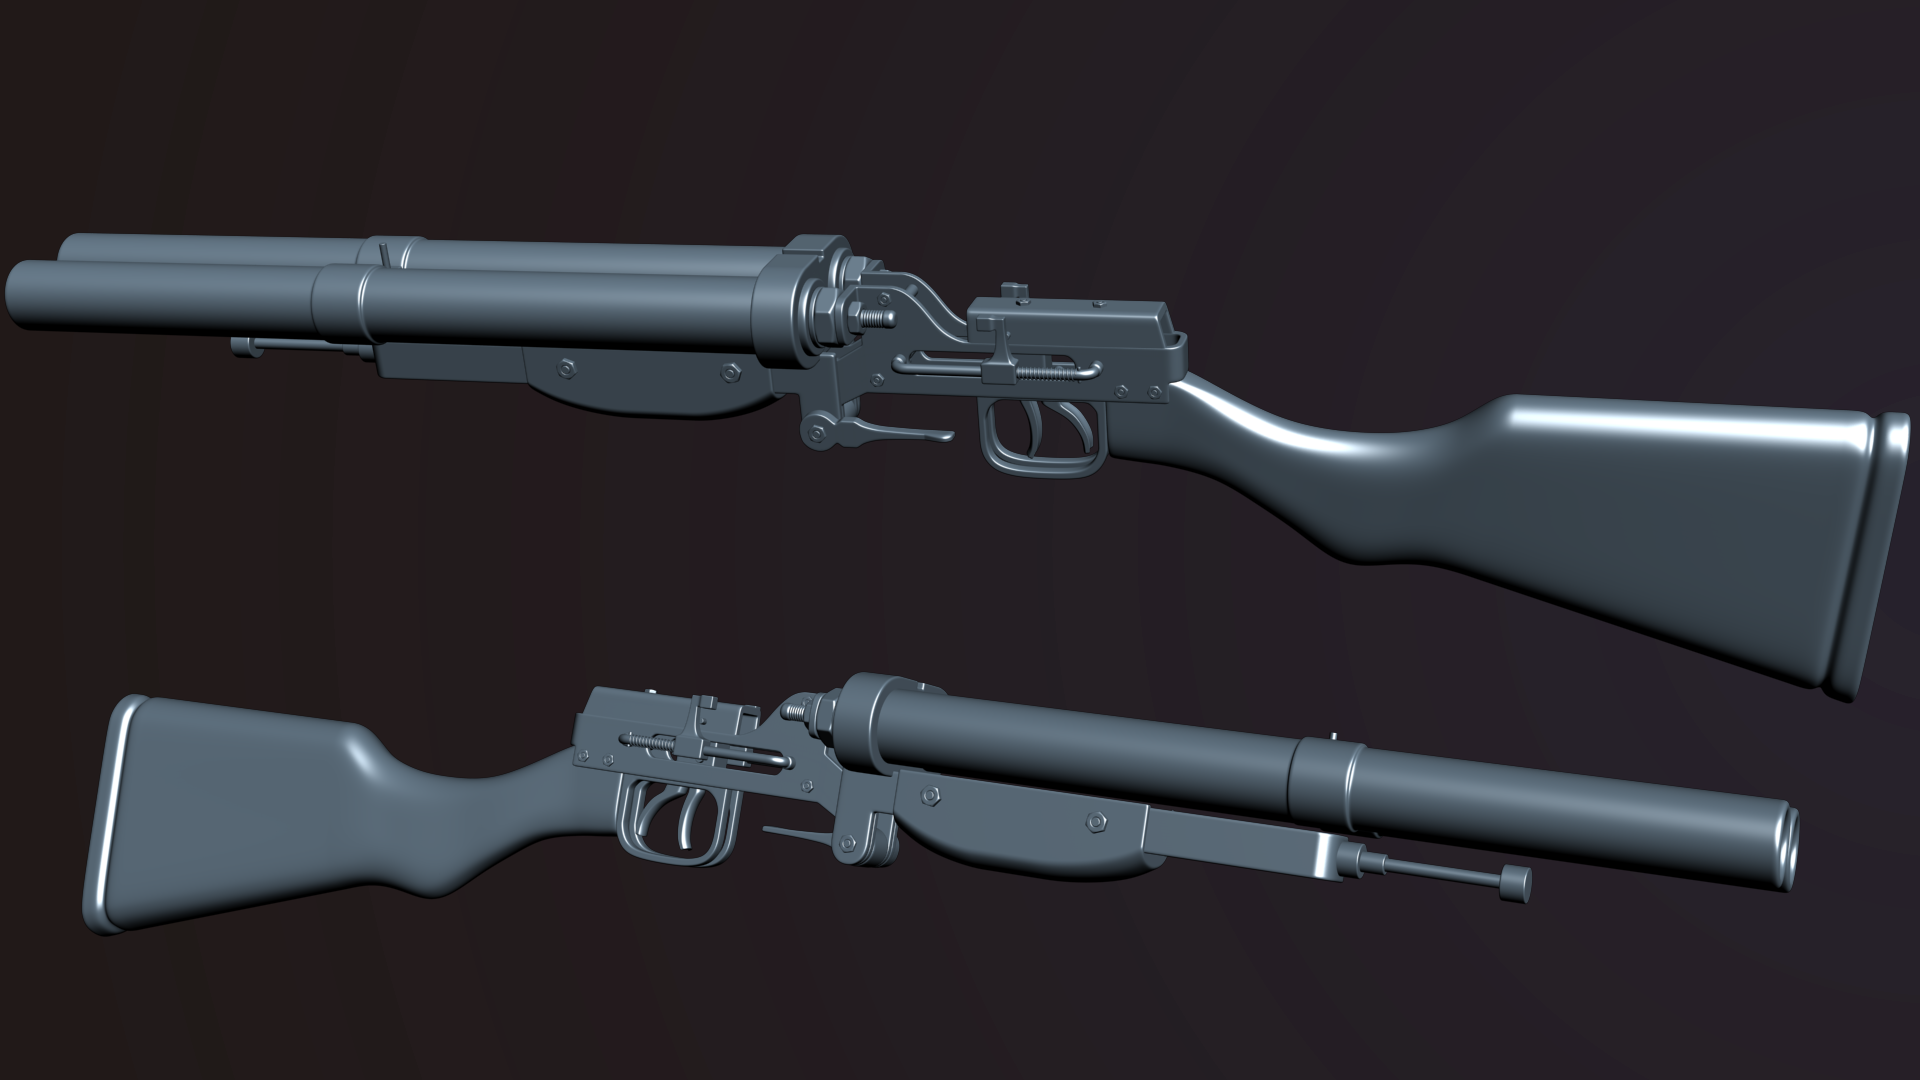 Homemade double barrel shotgun at Fallout New Vegas - mods and community